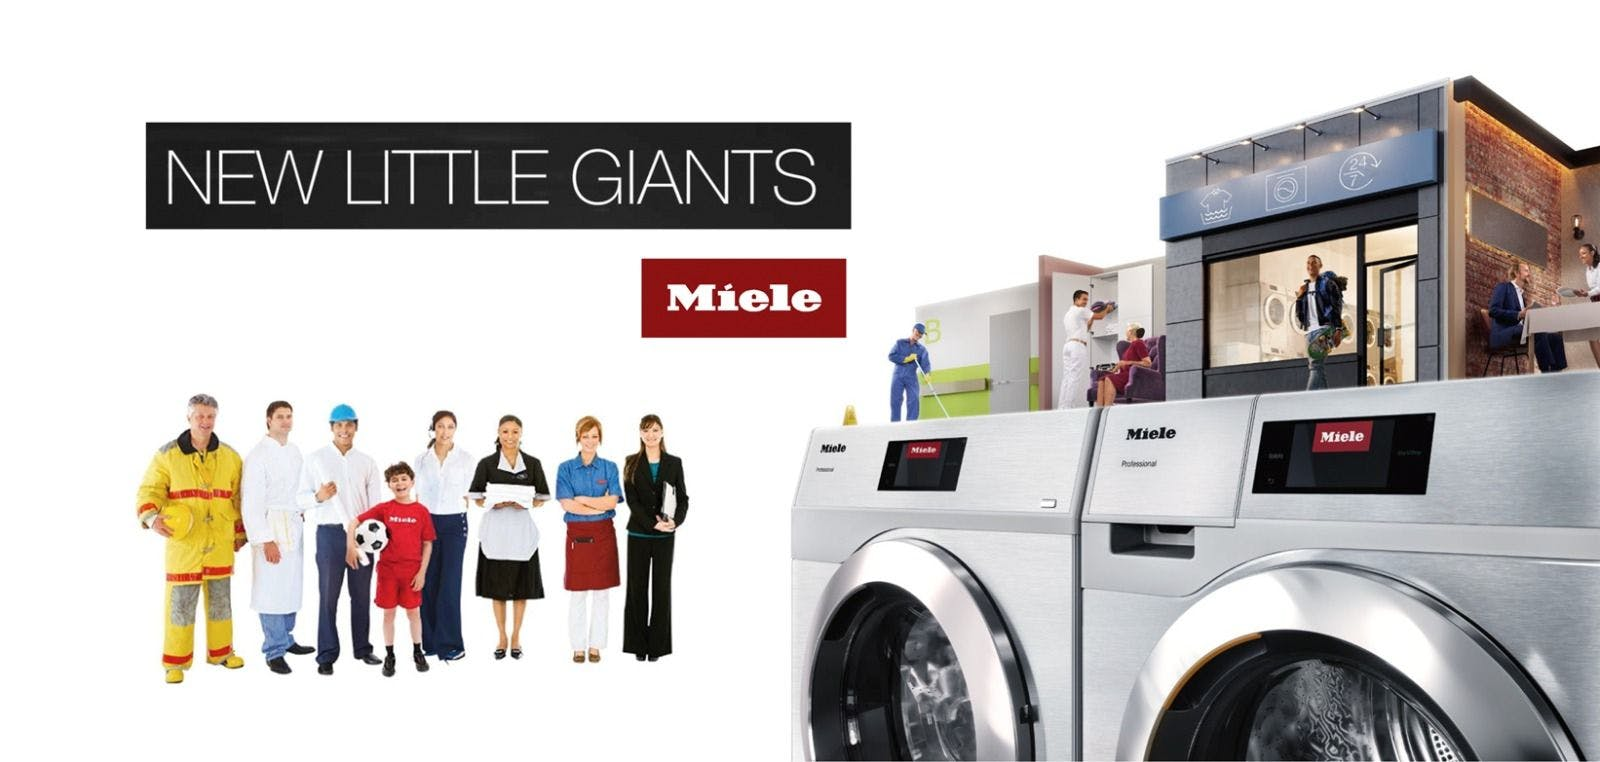 Miele's new generation Little Giants continue to raise the standards in commercial laundry.